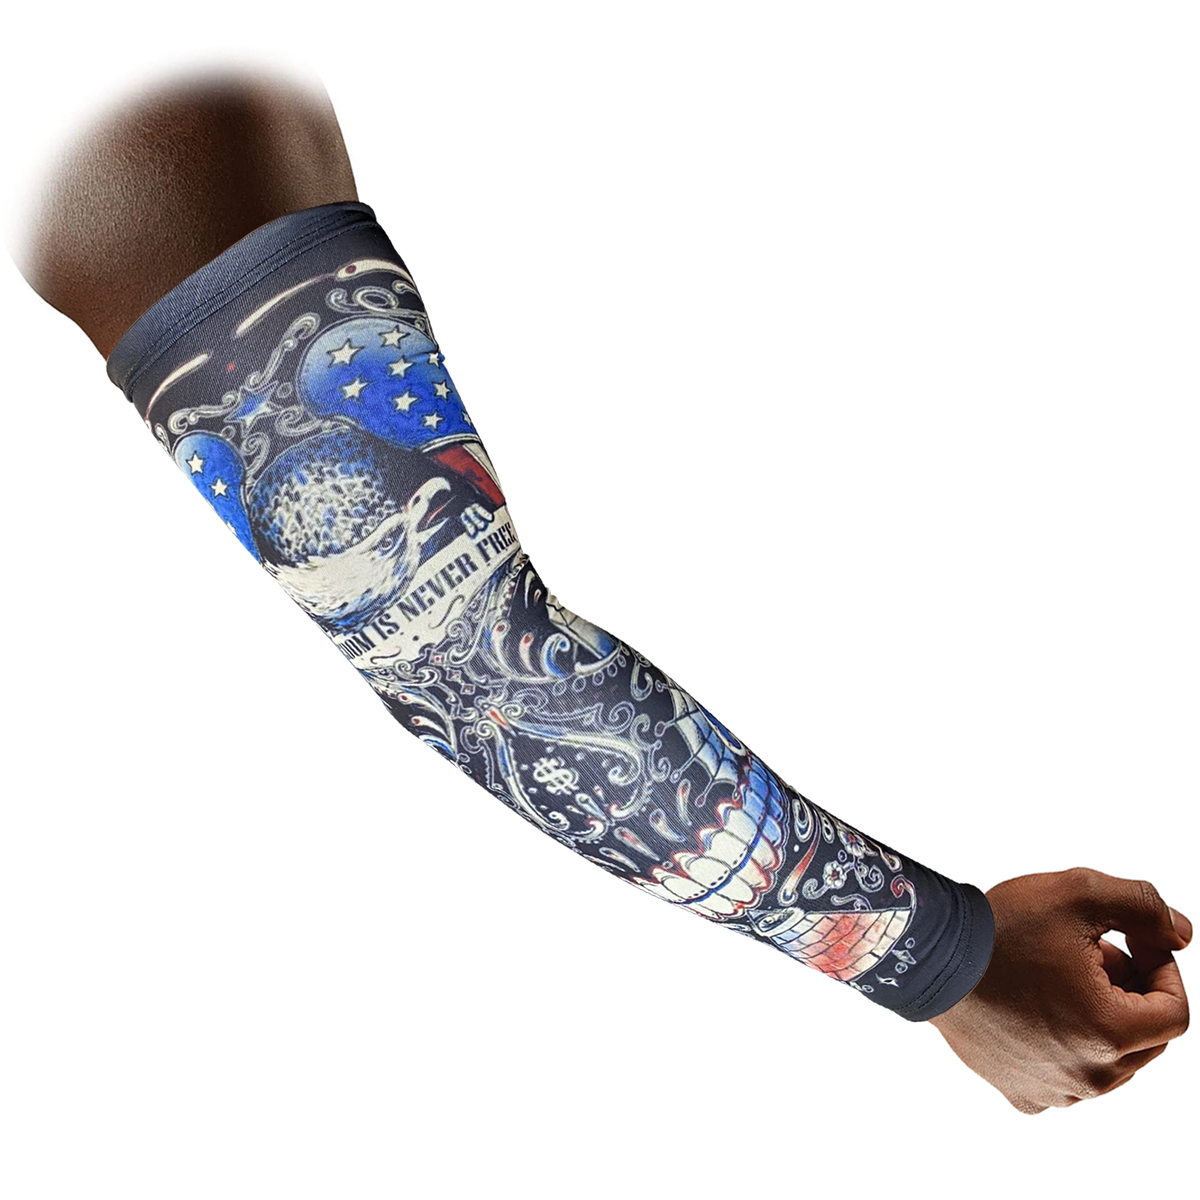 Rovers Compression Arm Sleeves 2 Pair, Made of Lyrca, Antiperspirant, Breathing Fabric for Basketball, Baseball, Football, Volleyball, Men Women Youth Kids